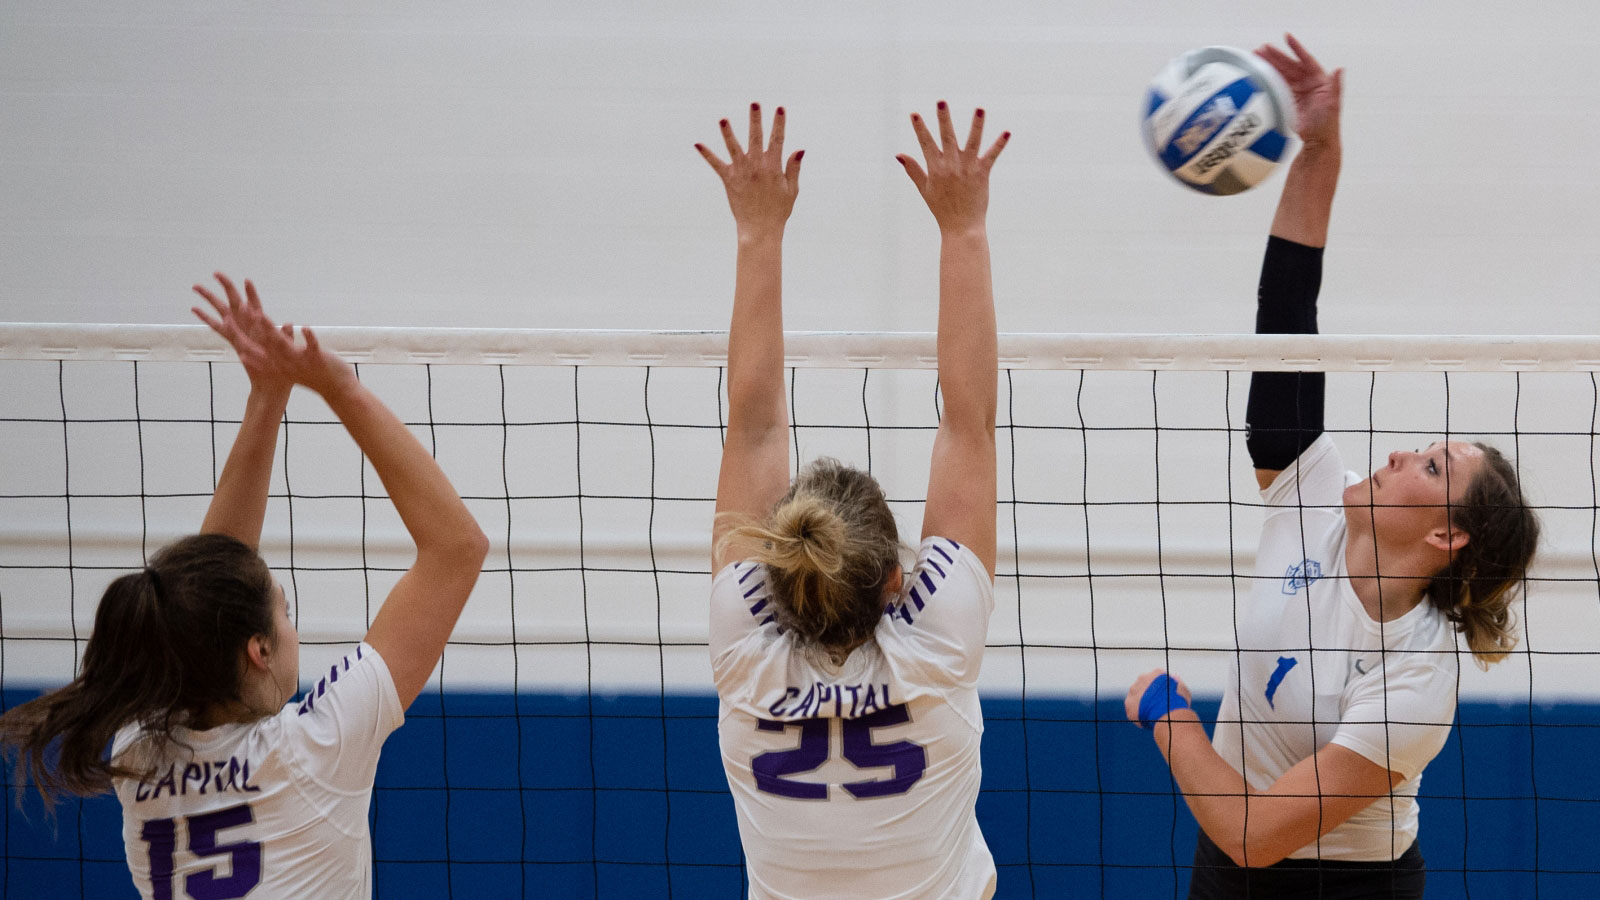 a close up of a womens volleyball player hitting the ball over the net during a match